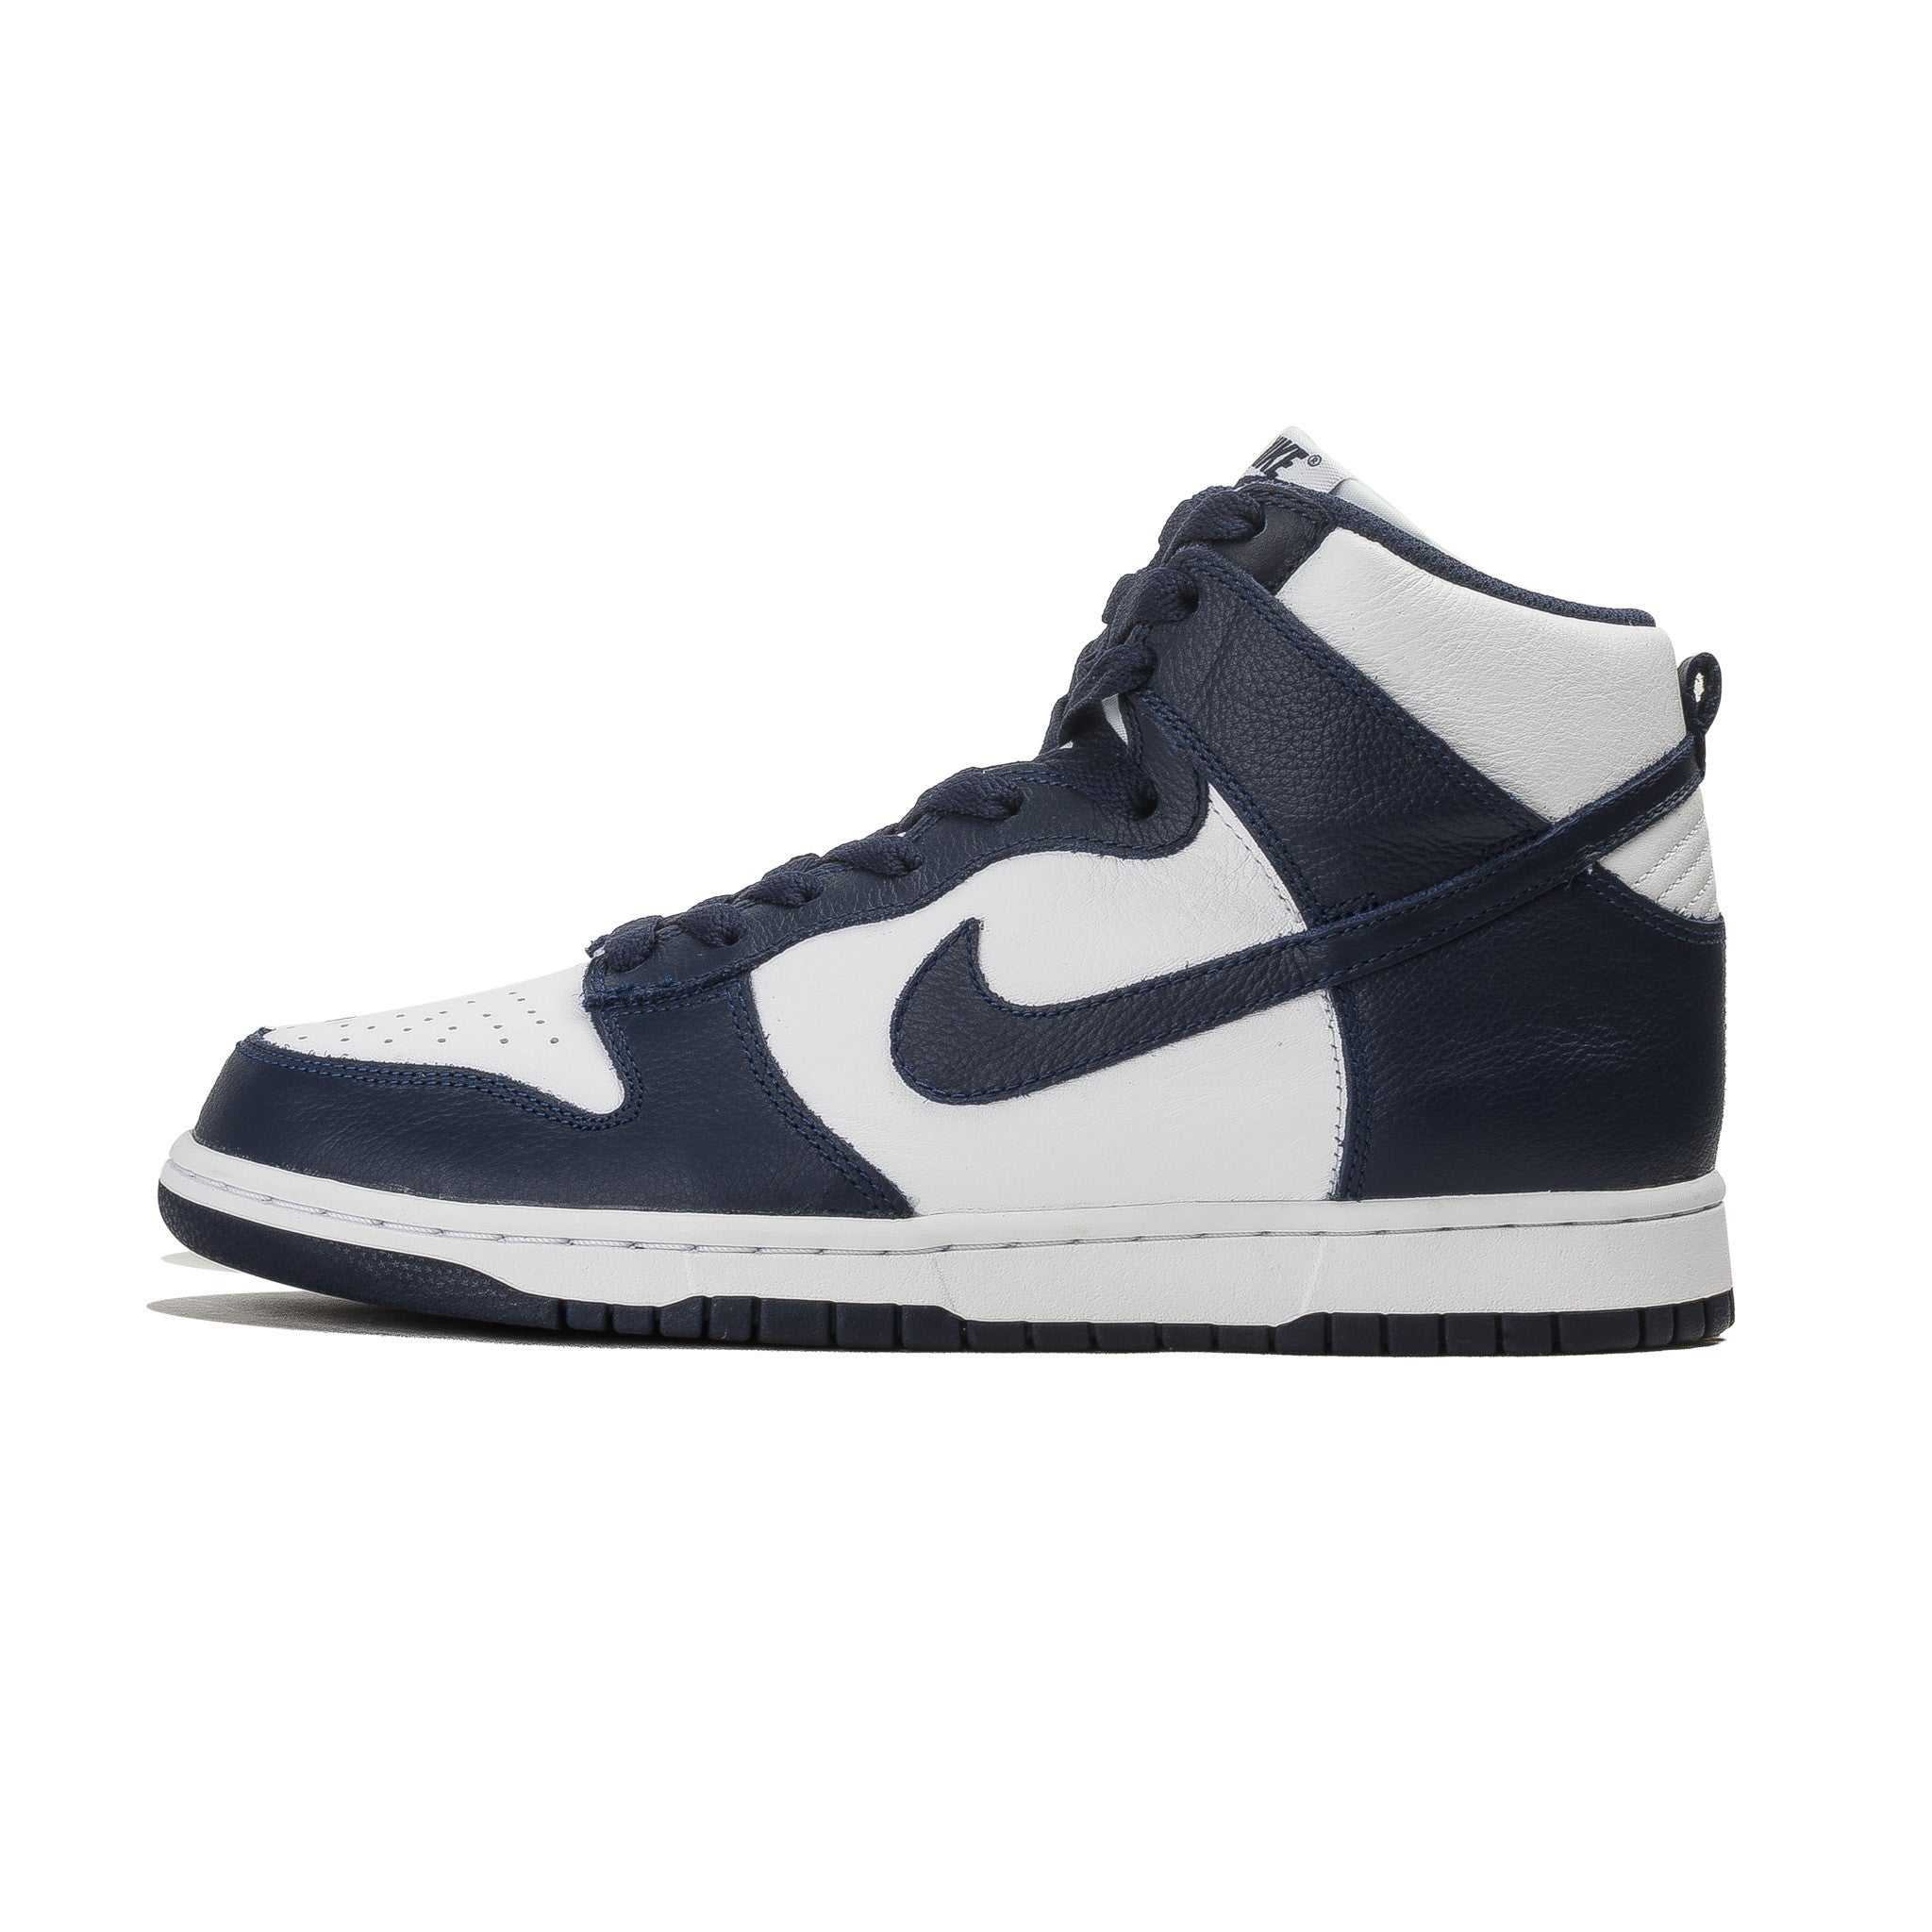 Dunk Retro QS 850477-103